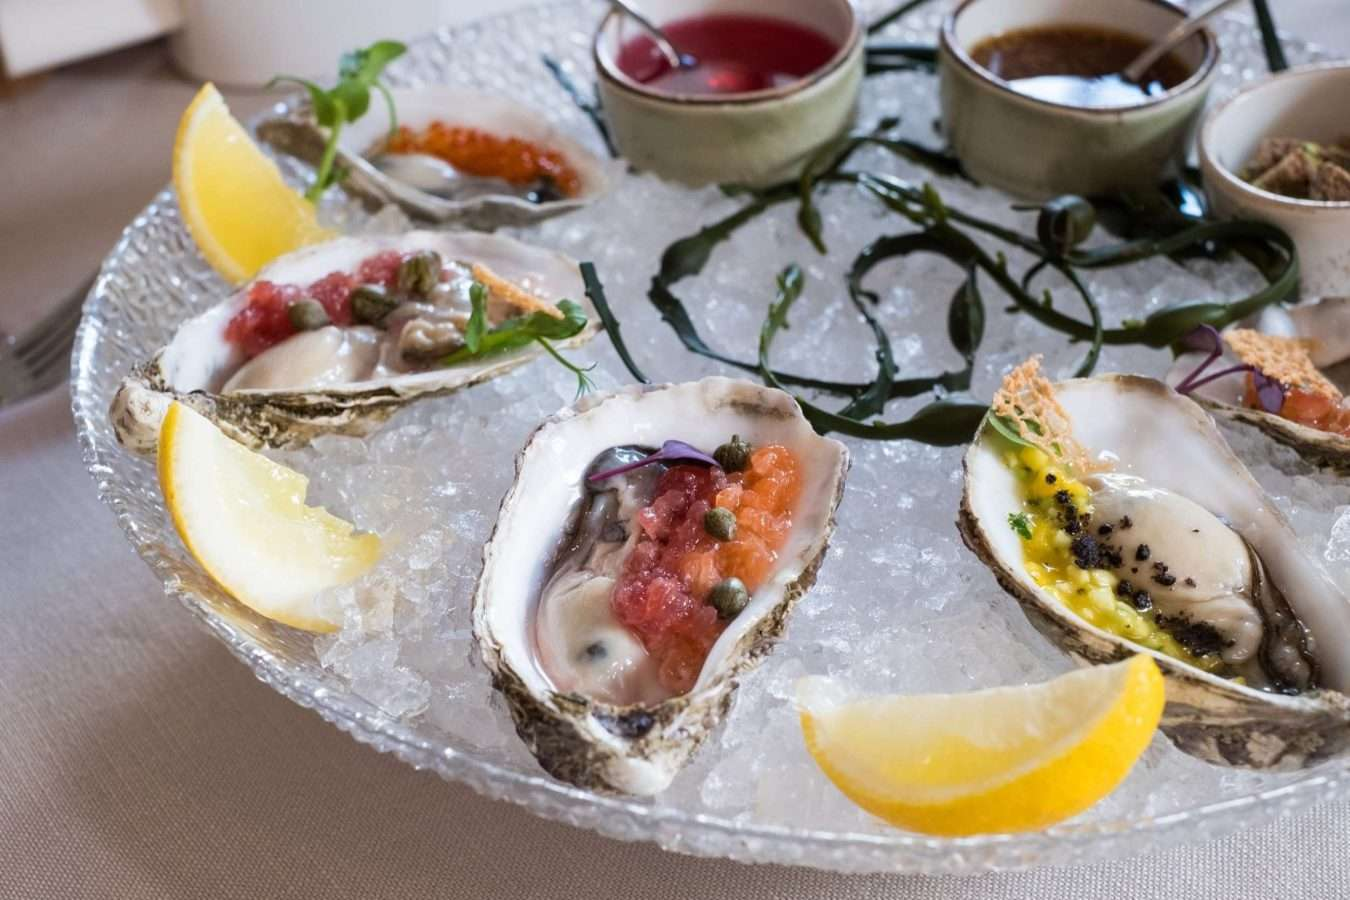 Tasty oysters on a plate.